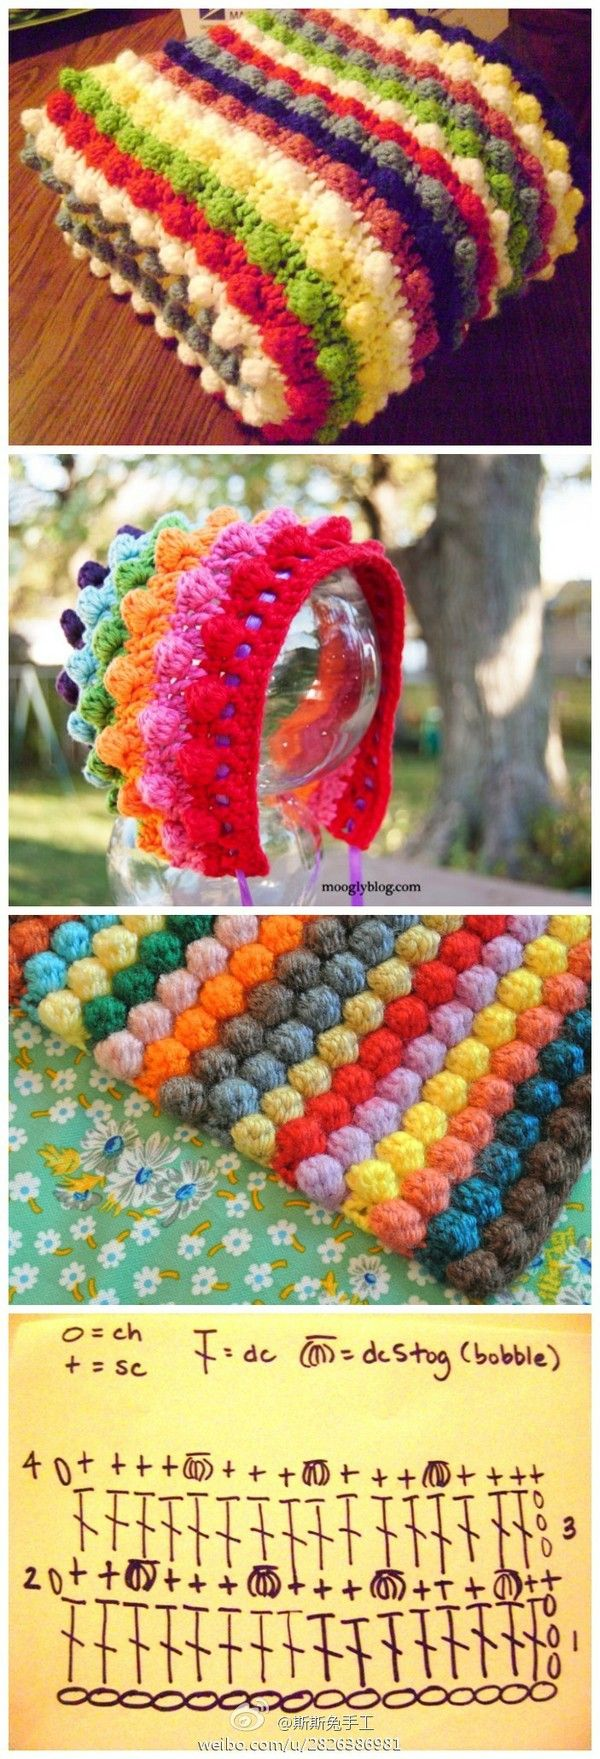 914 best free crochet stitch patterns / Häkelmuster images on ...